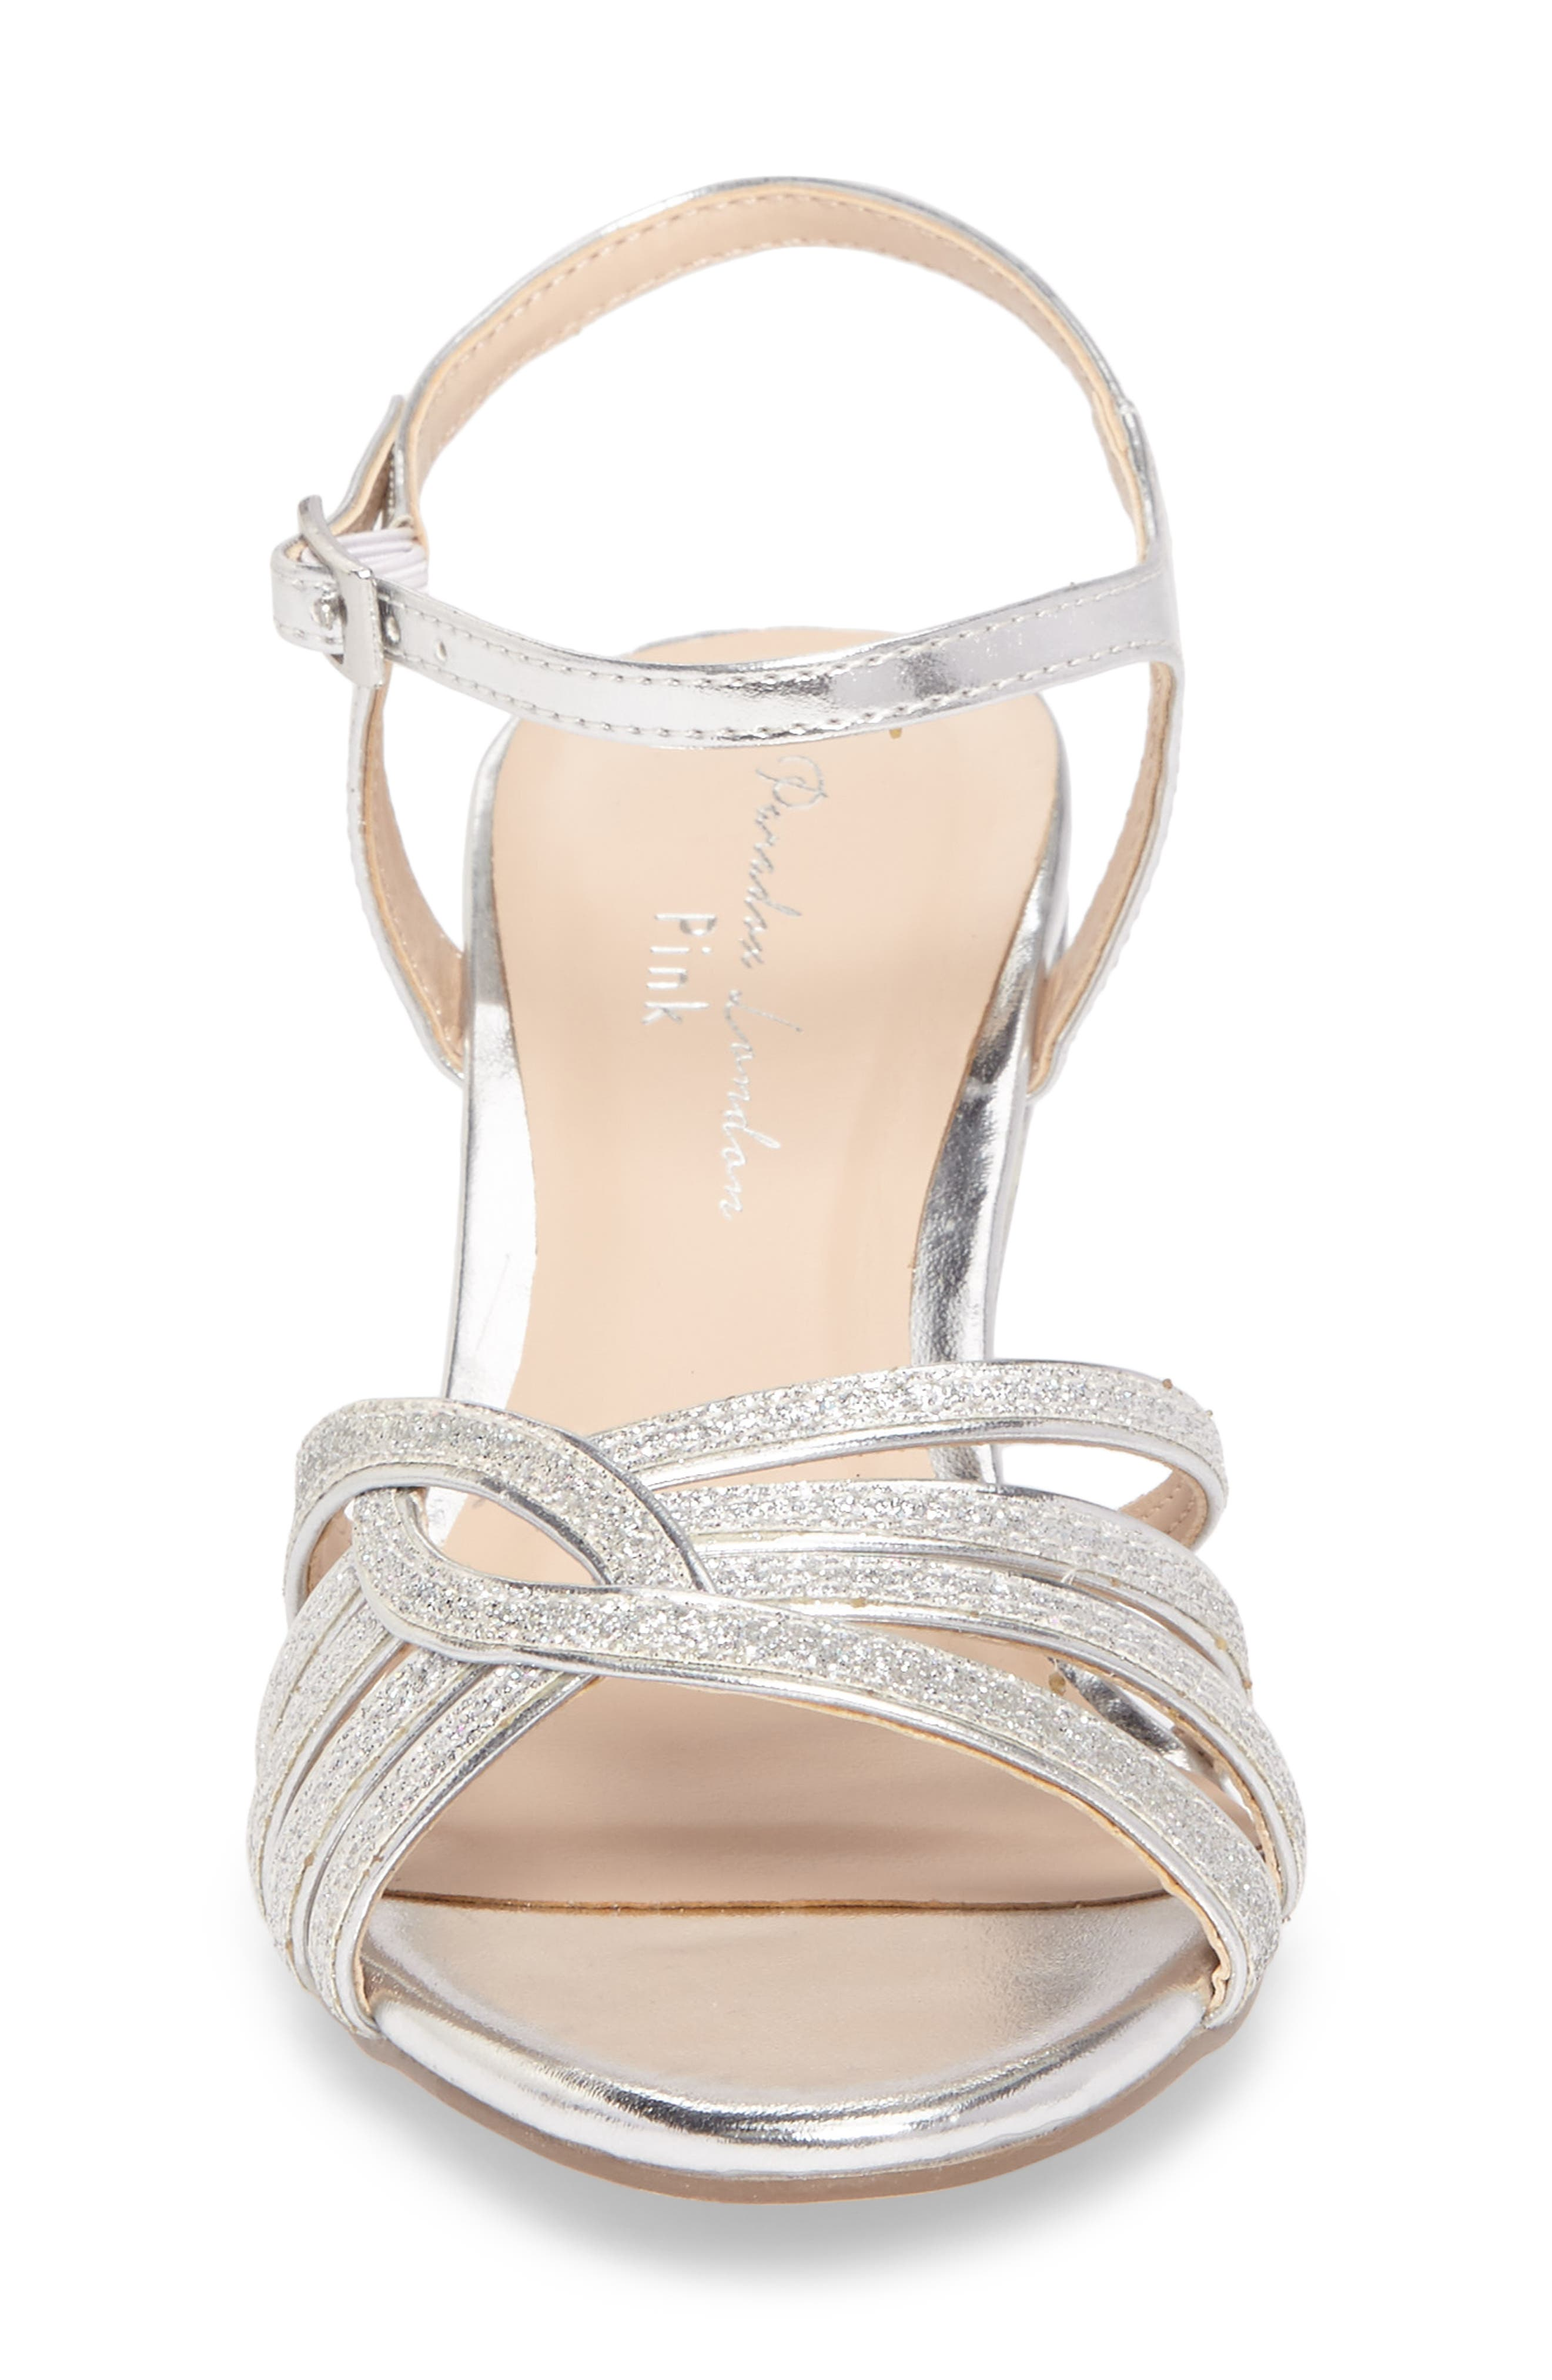 Karianne Wedge Sandal,                             Alternate thumbnail 4, color,                             Silver